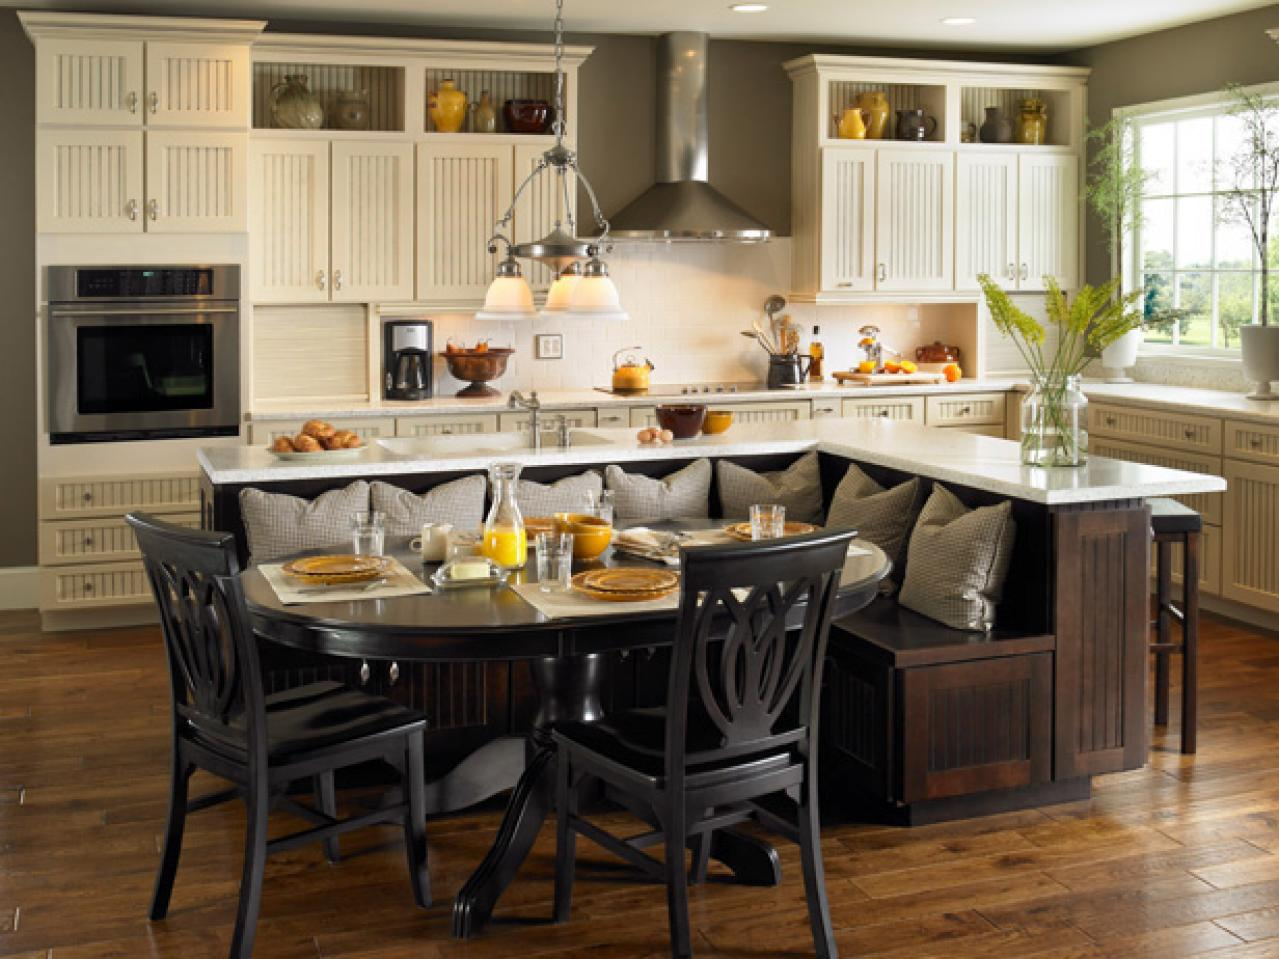 10 Kitchen Islands : Kitchen Ideas u0026 Design with Cabinets, Islands, Backsplashes : HGTV